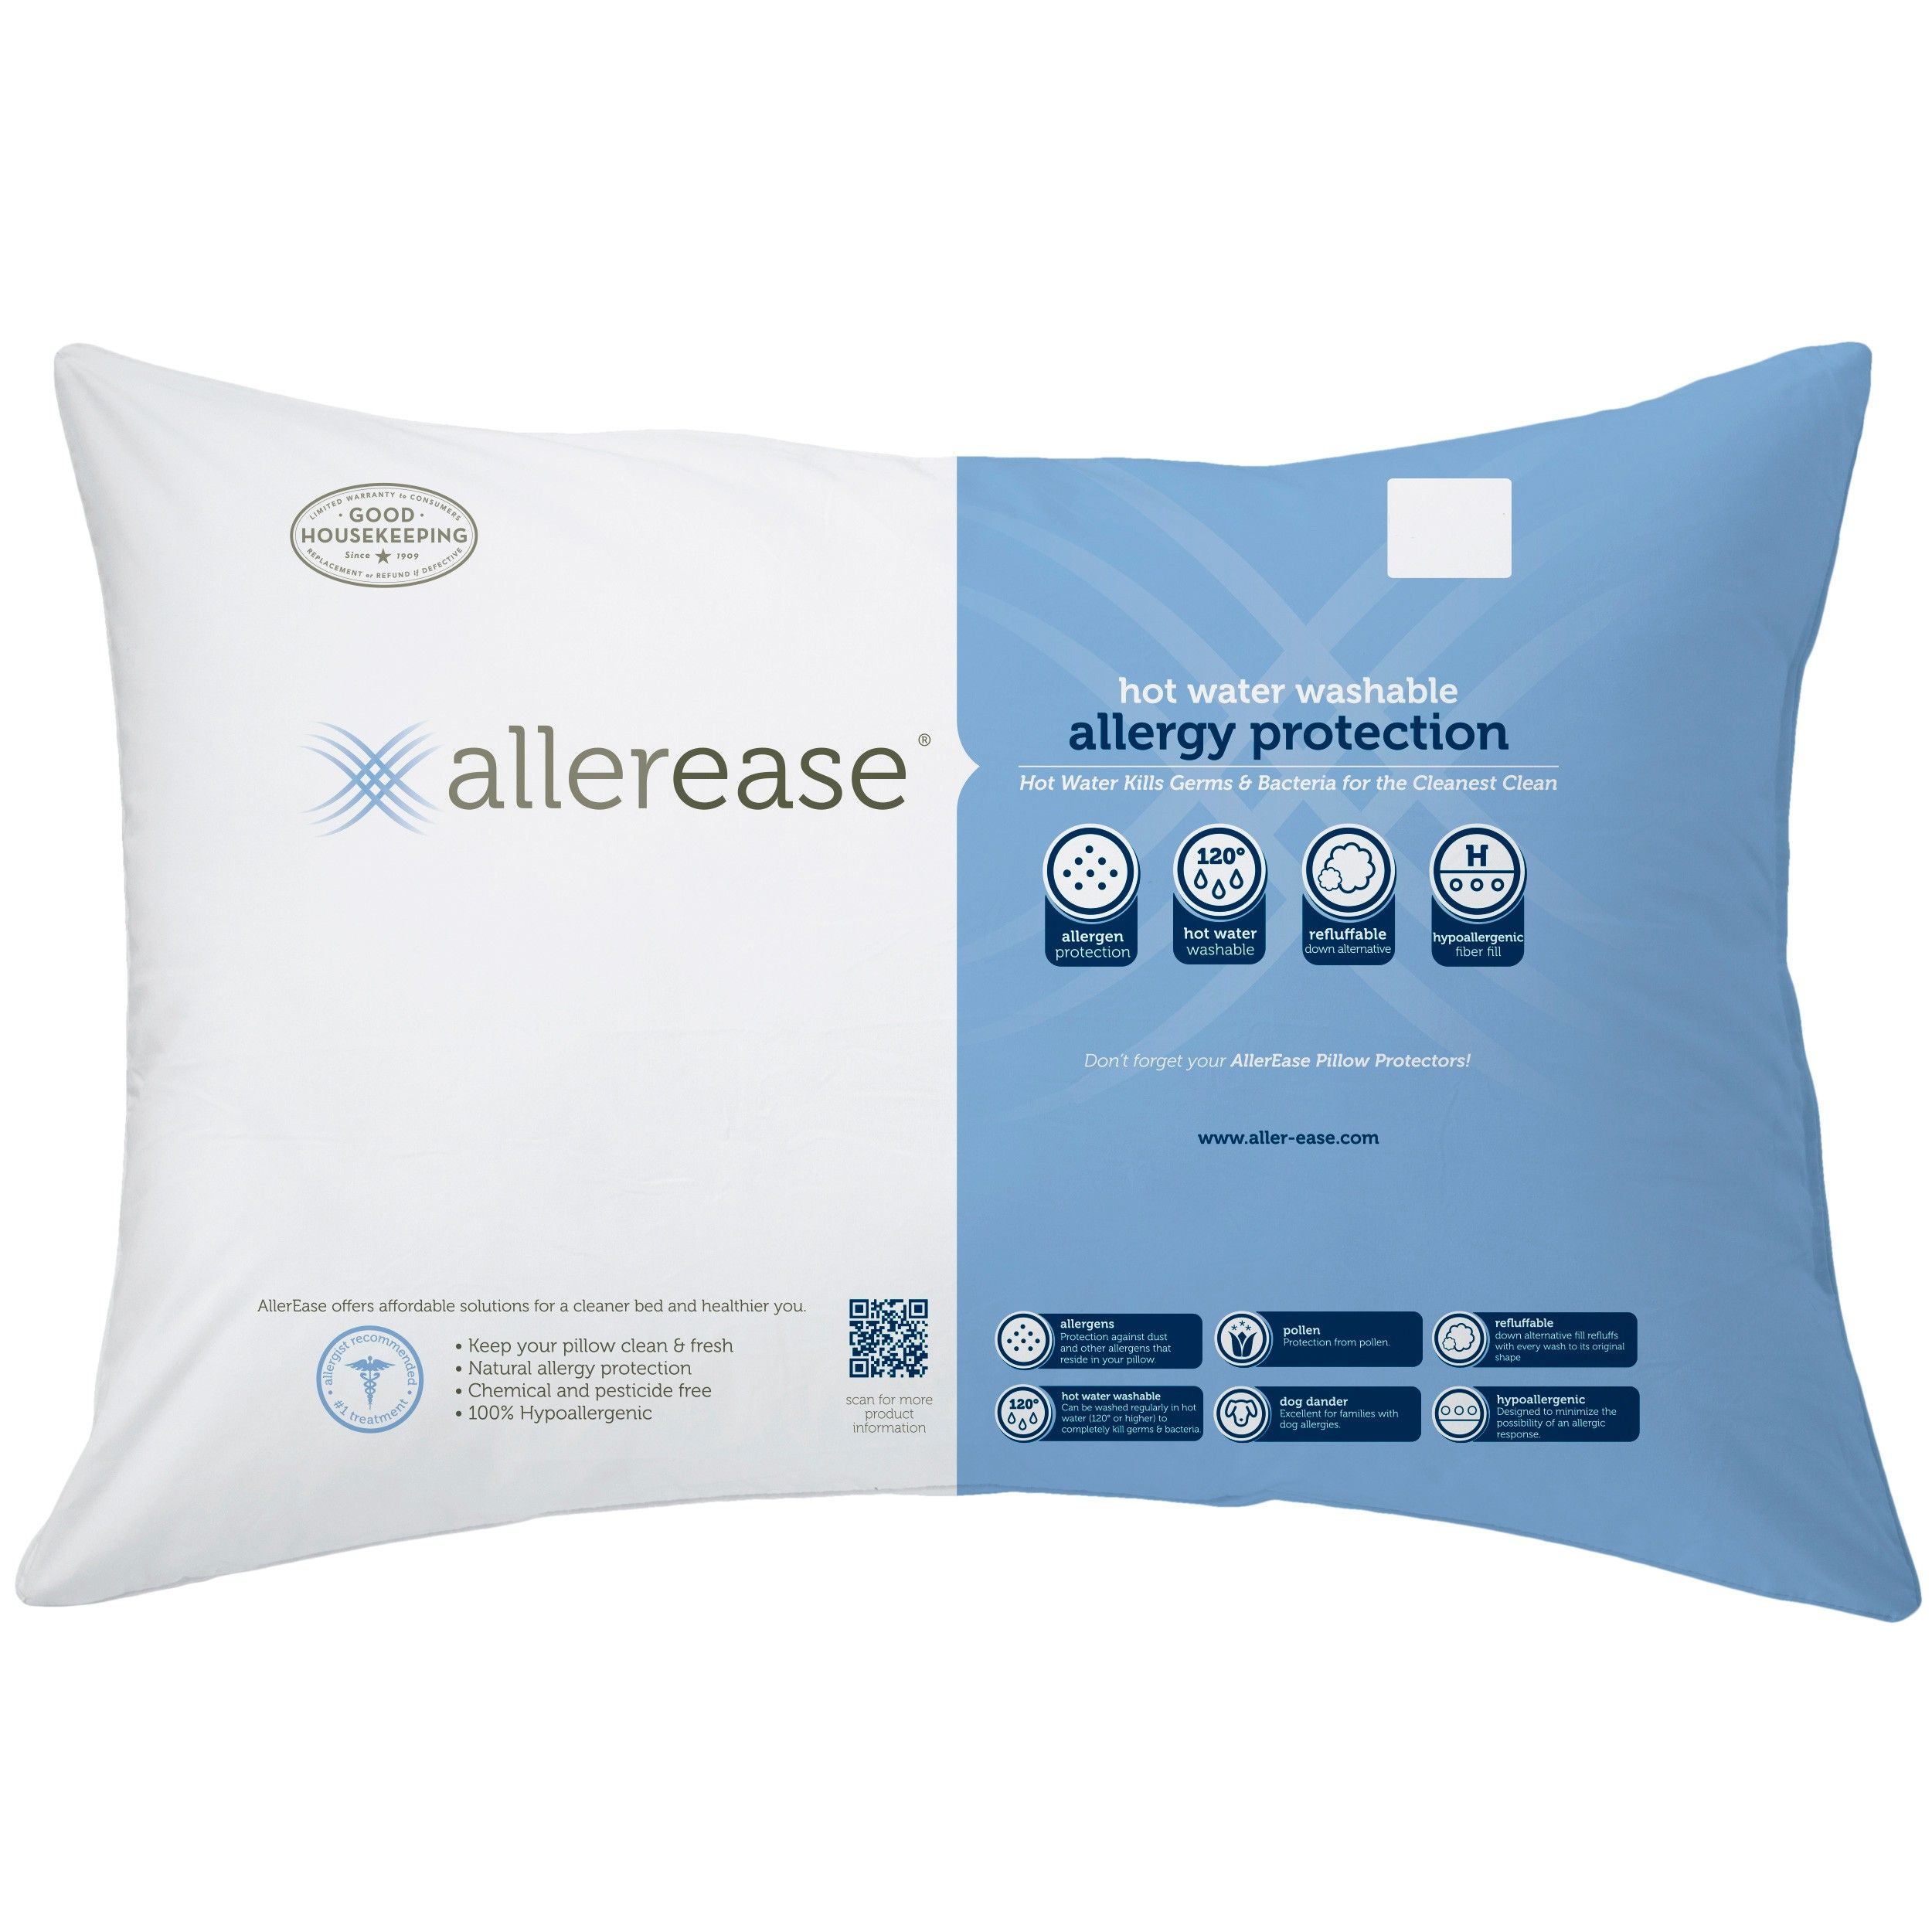 Allergy proof fabric prevents dust mites, allergens, pet dander and ...